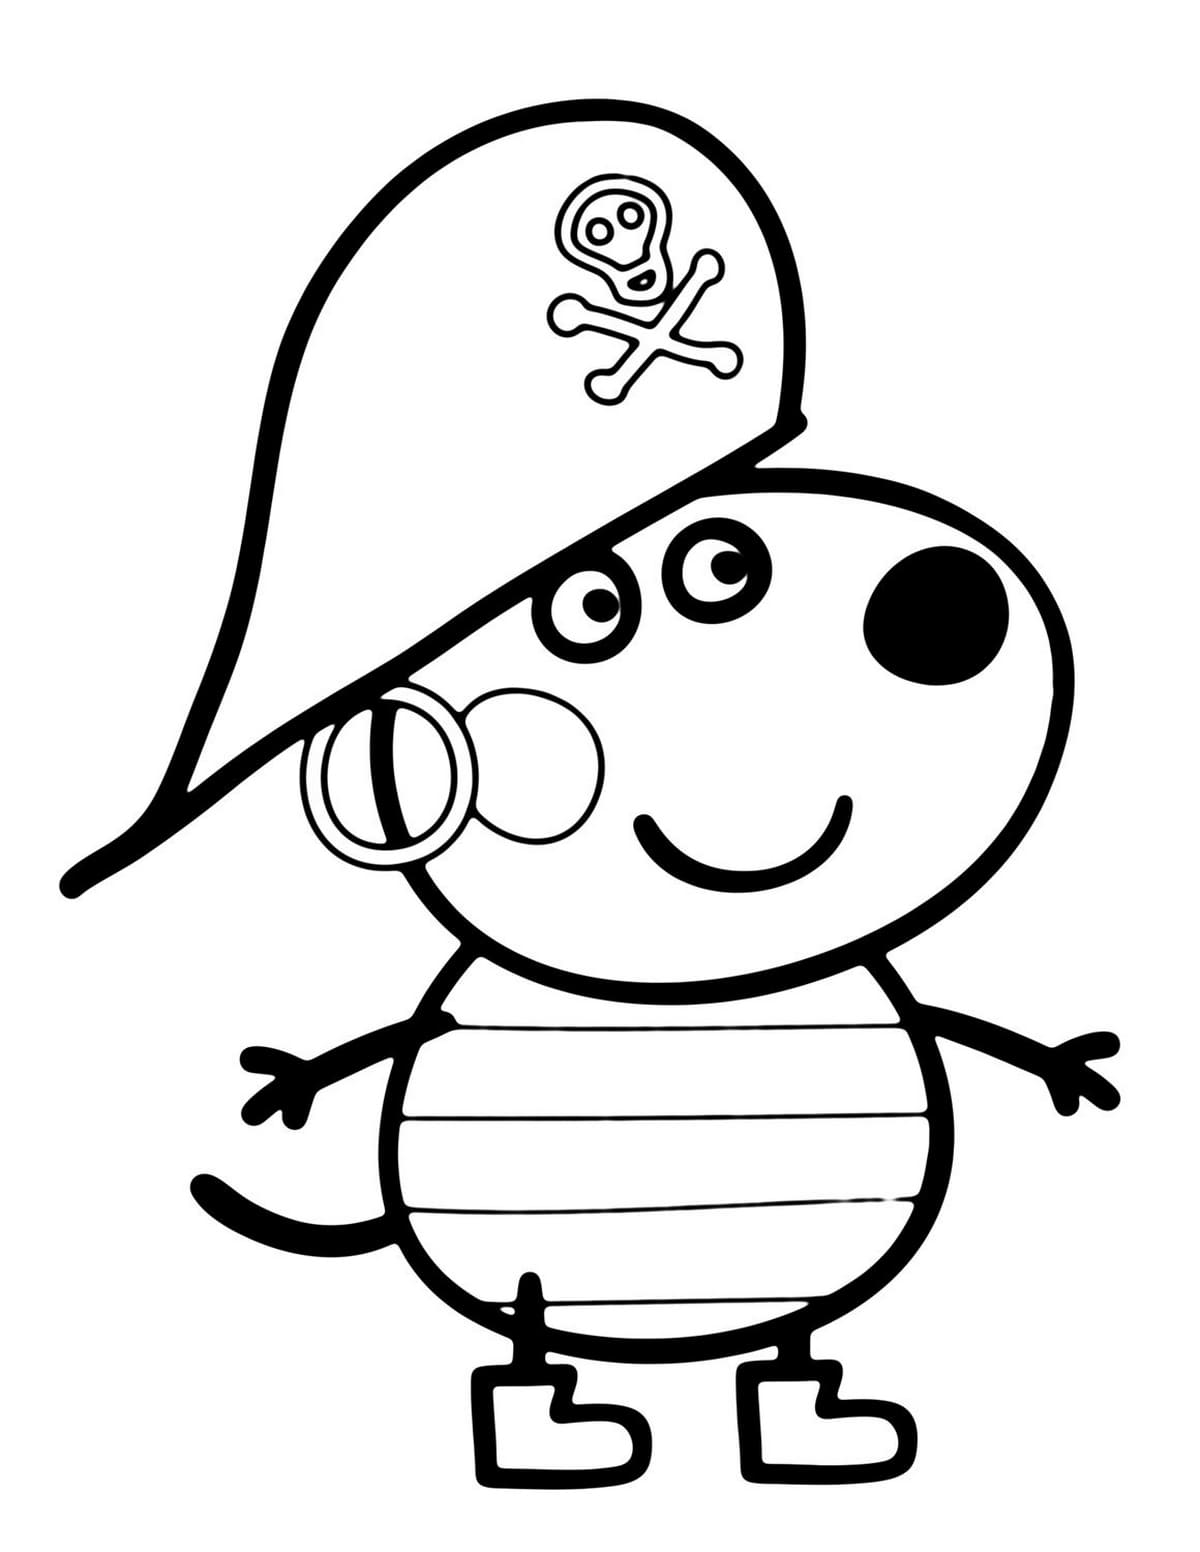 coloring pages peppa pig coloring pages peppa pig coloring peppa pig pages